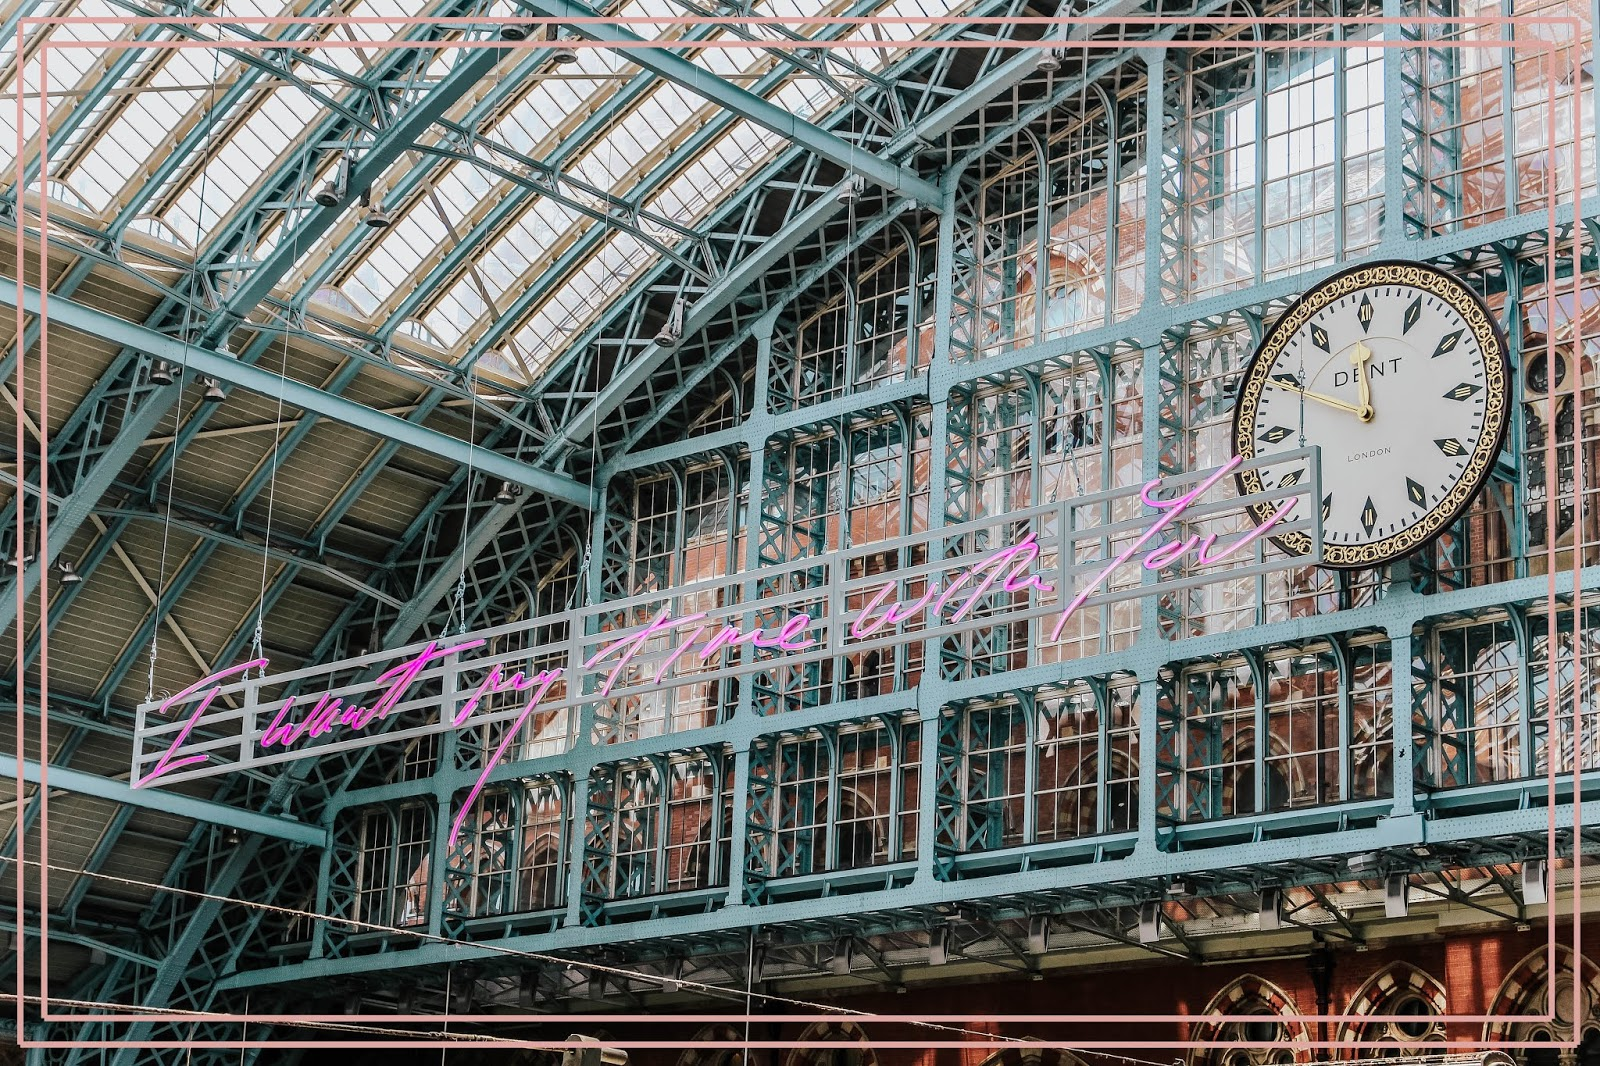 St Pancras Station I Want My Time With You Neon Sign